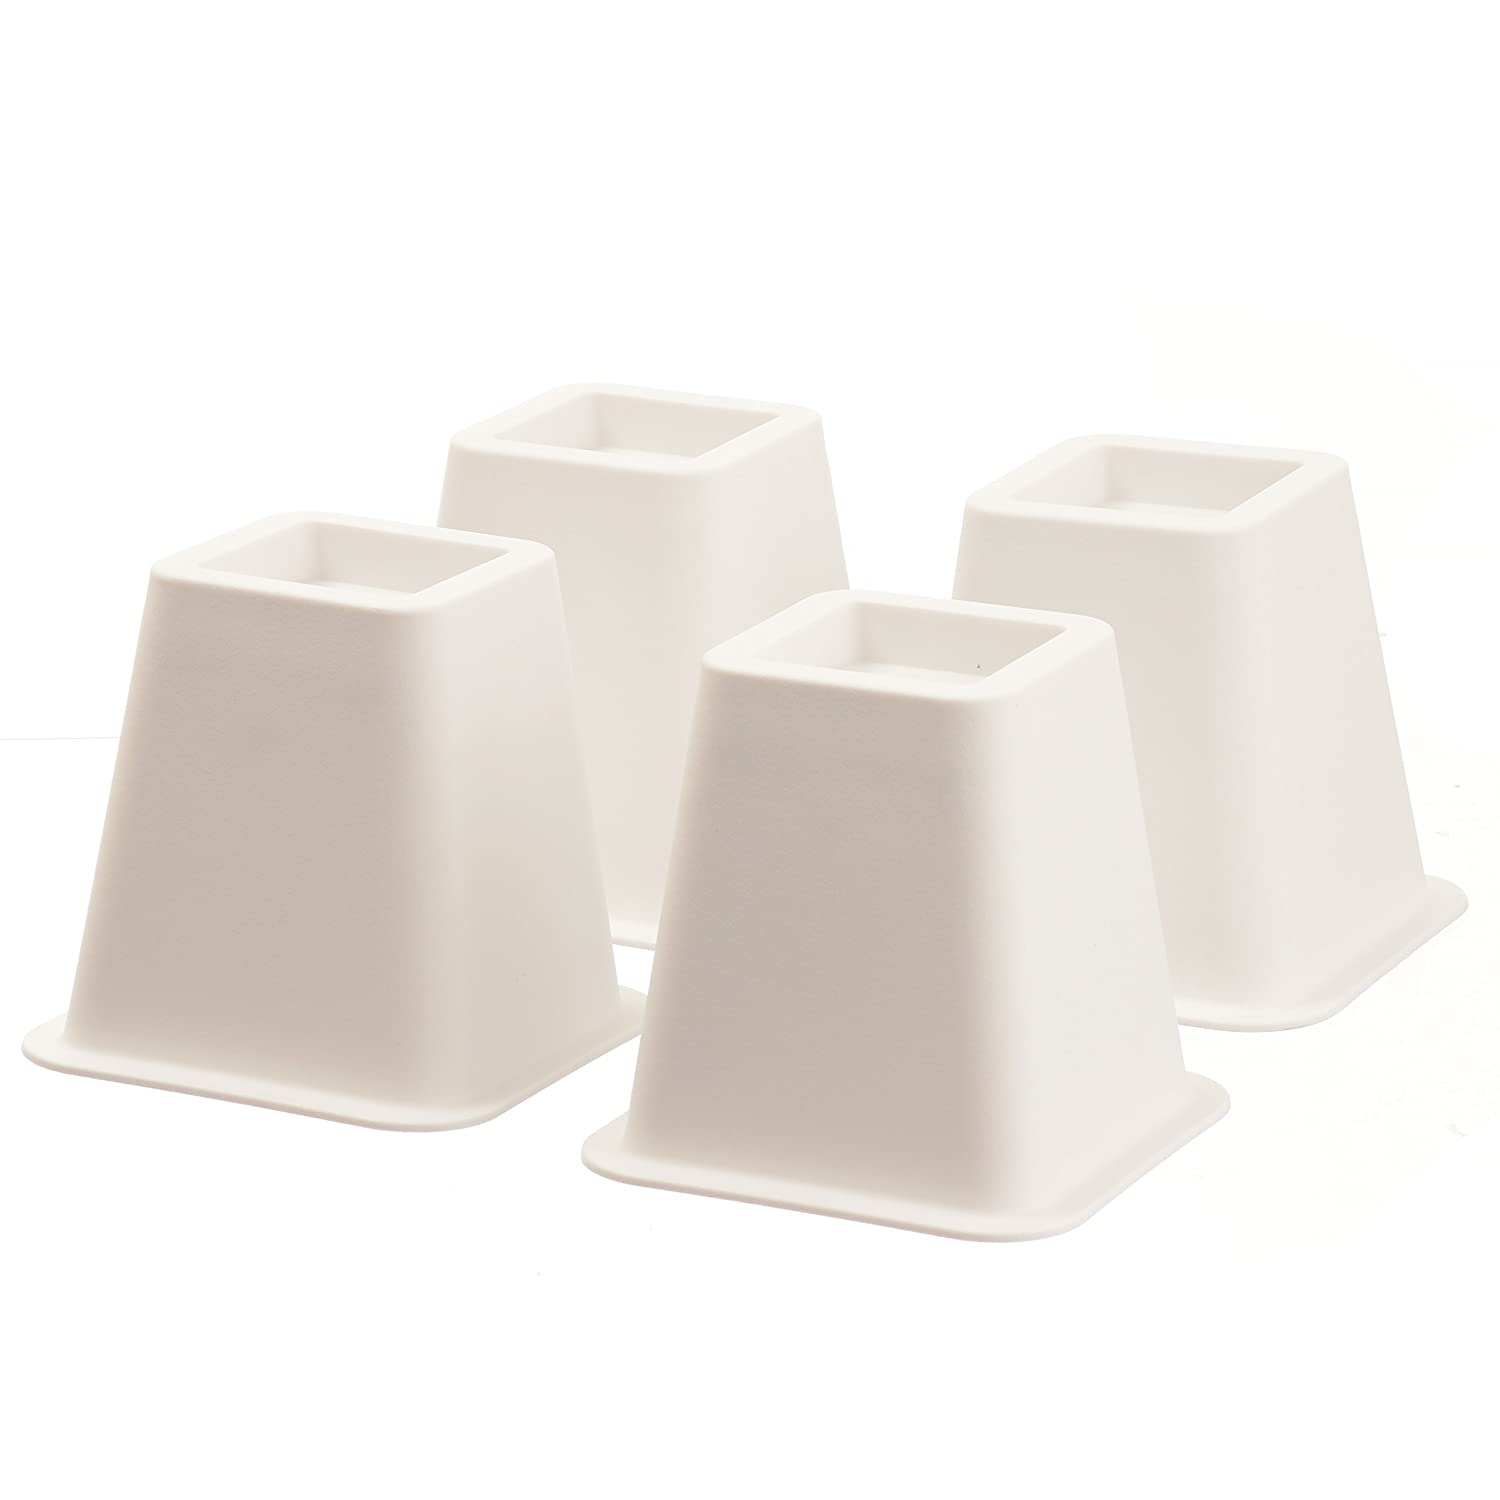 Home-it 5 to 6-inch SUPER QUALITY White bed risers, helps you storage under the bed 4-pack SYNCHKG054641